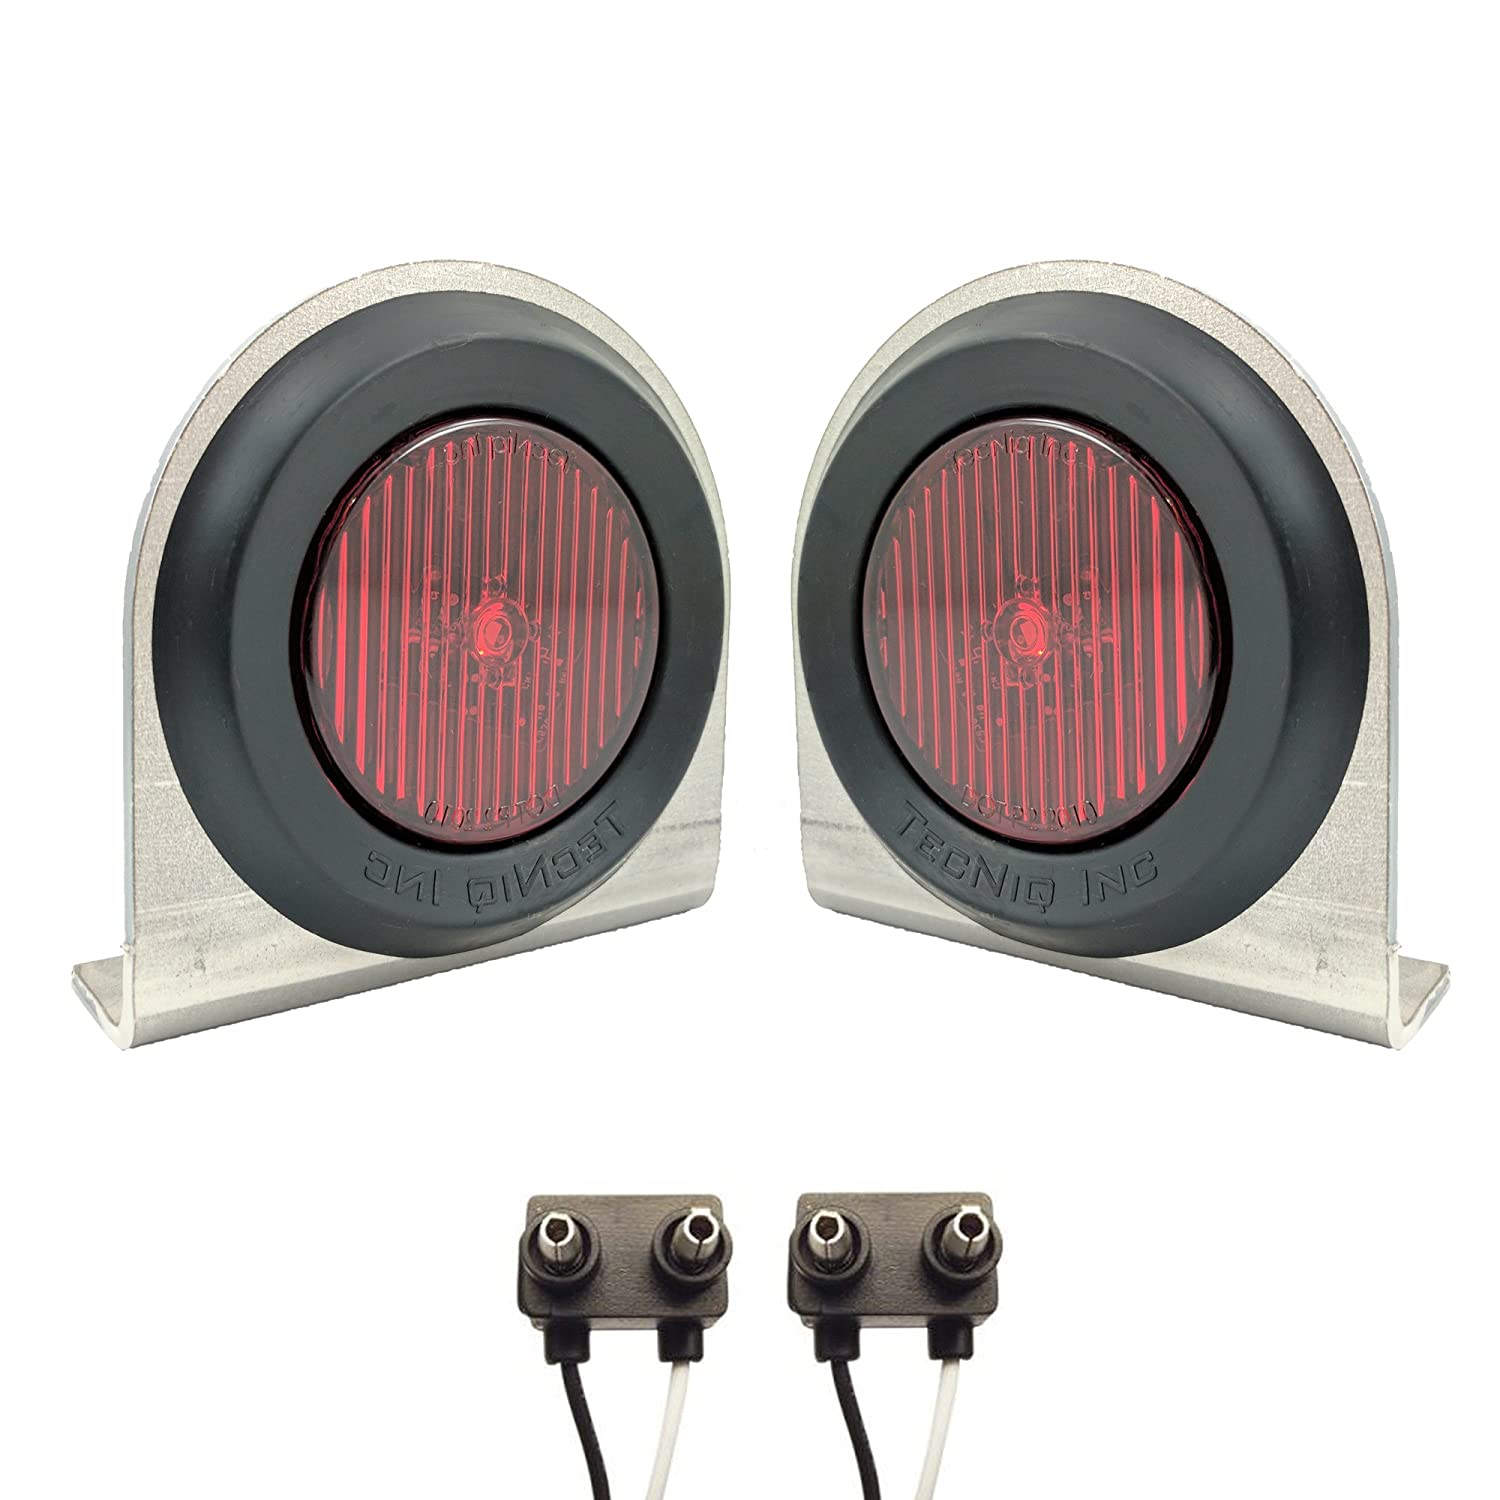 Pair of LED Low-Profile 2.5' RED Side Markers - LED Light Kit w/ Steel Mounting Brackets, Wire Plugs, & Grommets - LED Trailer Truck RV Lights (2.5' Round LED, Red) & Grommets - LED Trailer Truck RV Lights (2.5 Round LED TecNiq Inc S10